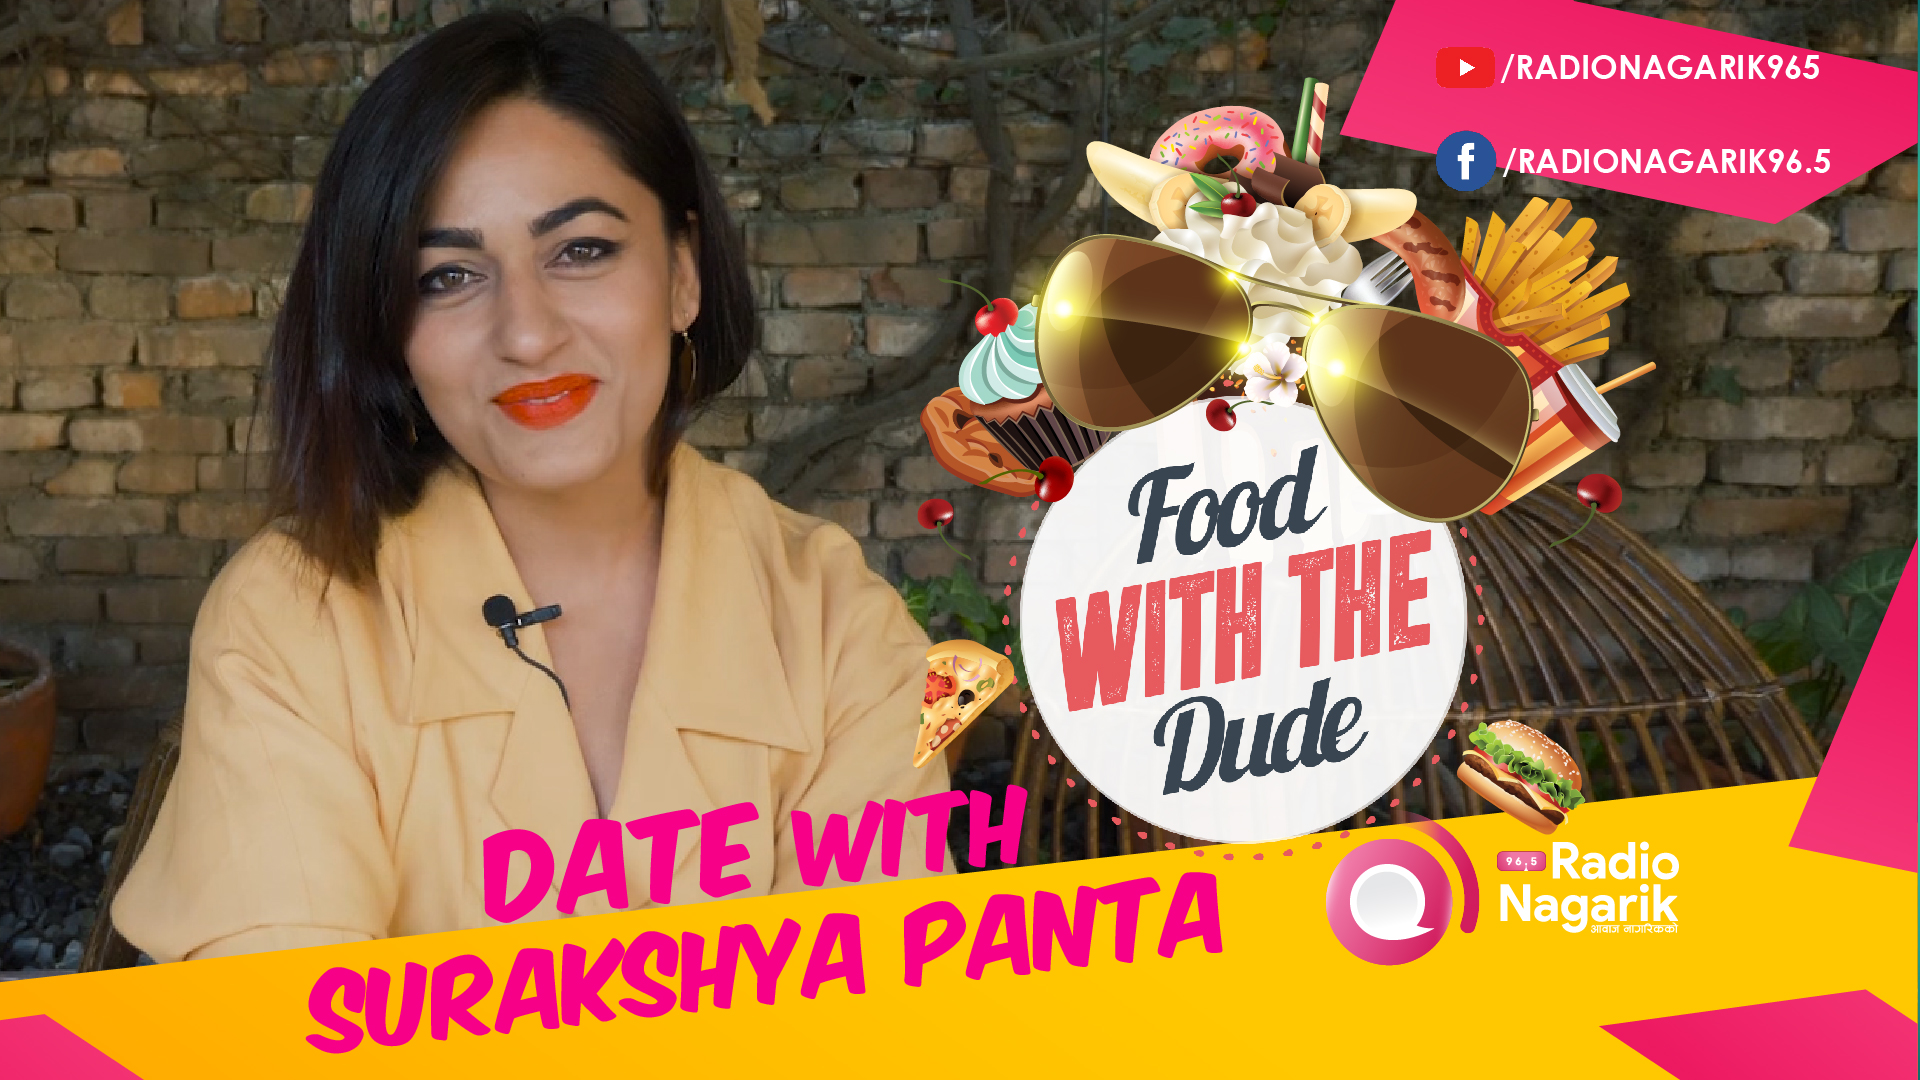 Date with SURAKSHYA PANTA | Looking to impress a girl ? - DATE 8 | #FoodWithTheDude